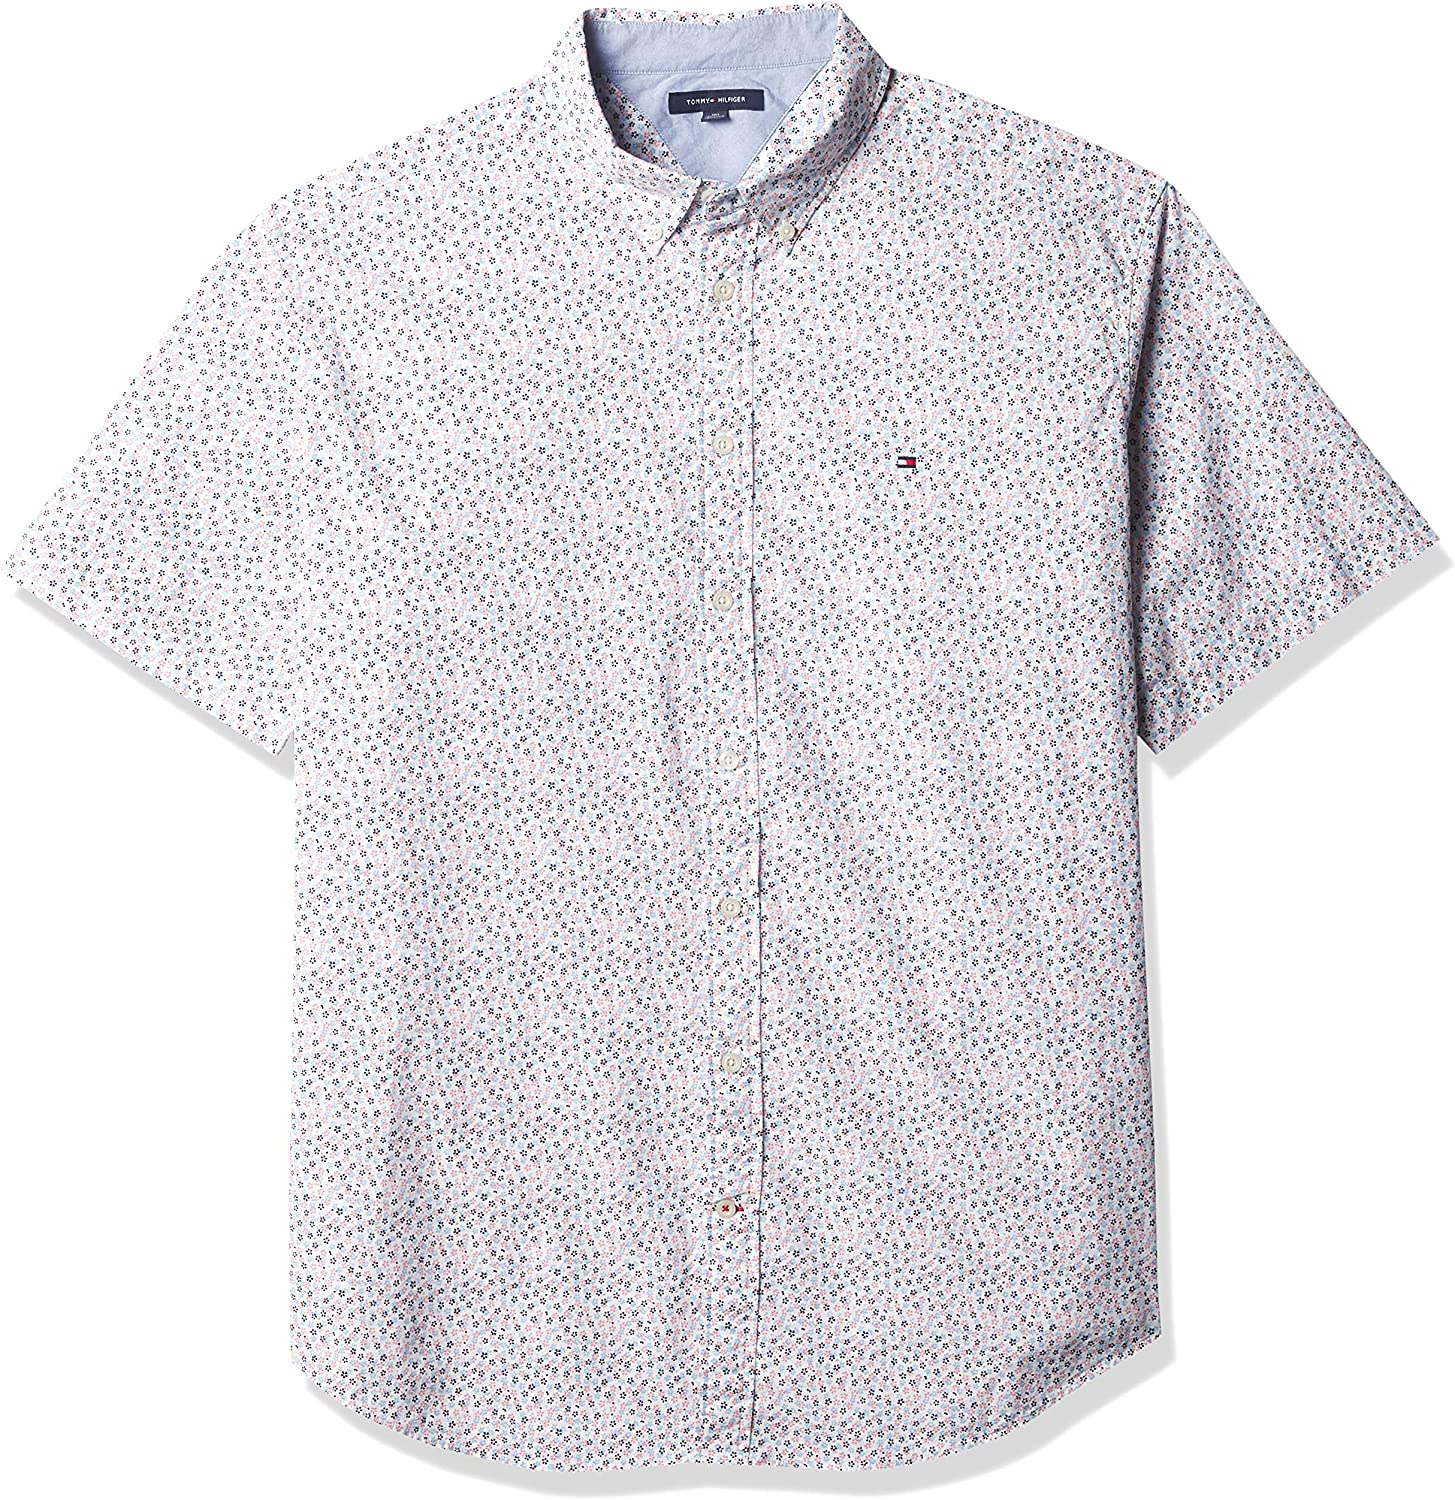 Tommy Hilfiger Men's Big & Tall Short Sleeve Button Down Shirt in Classic Fit